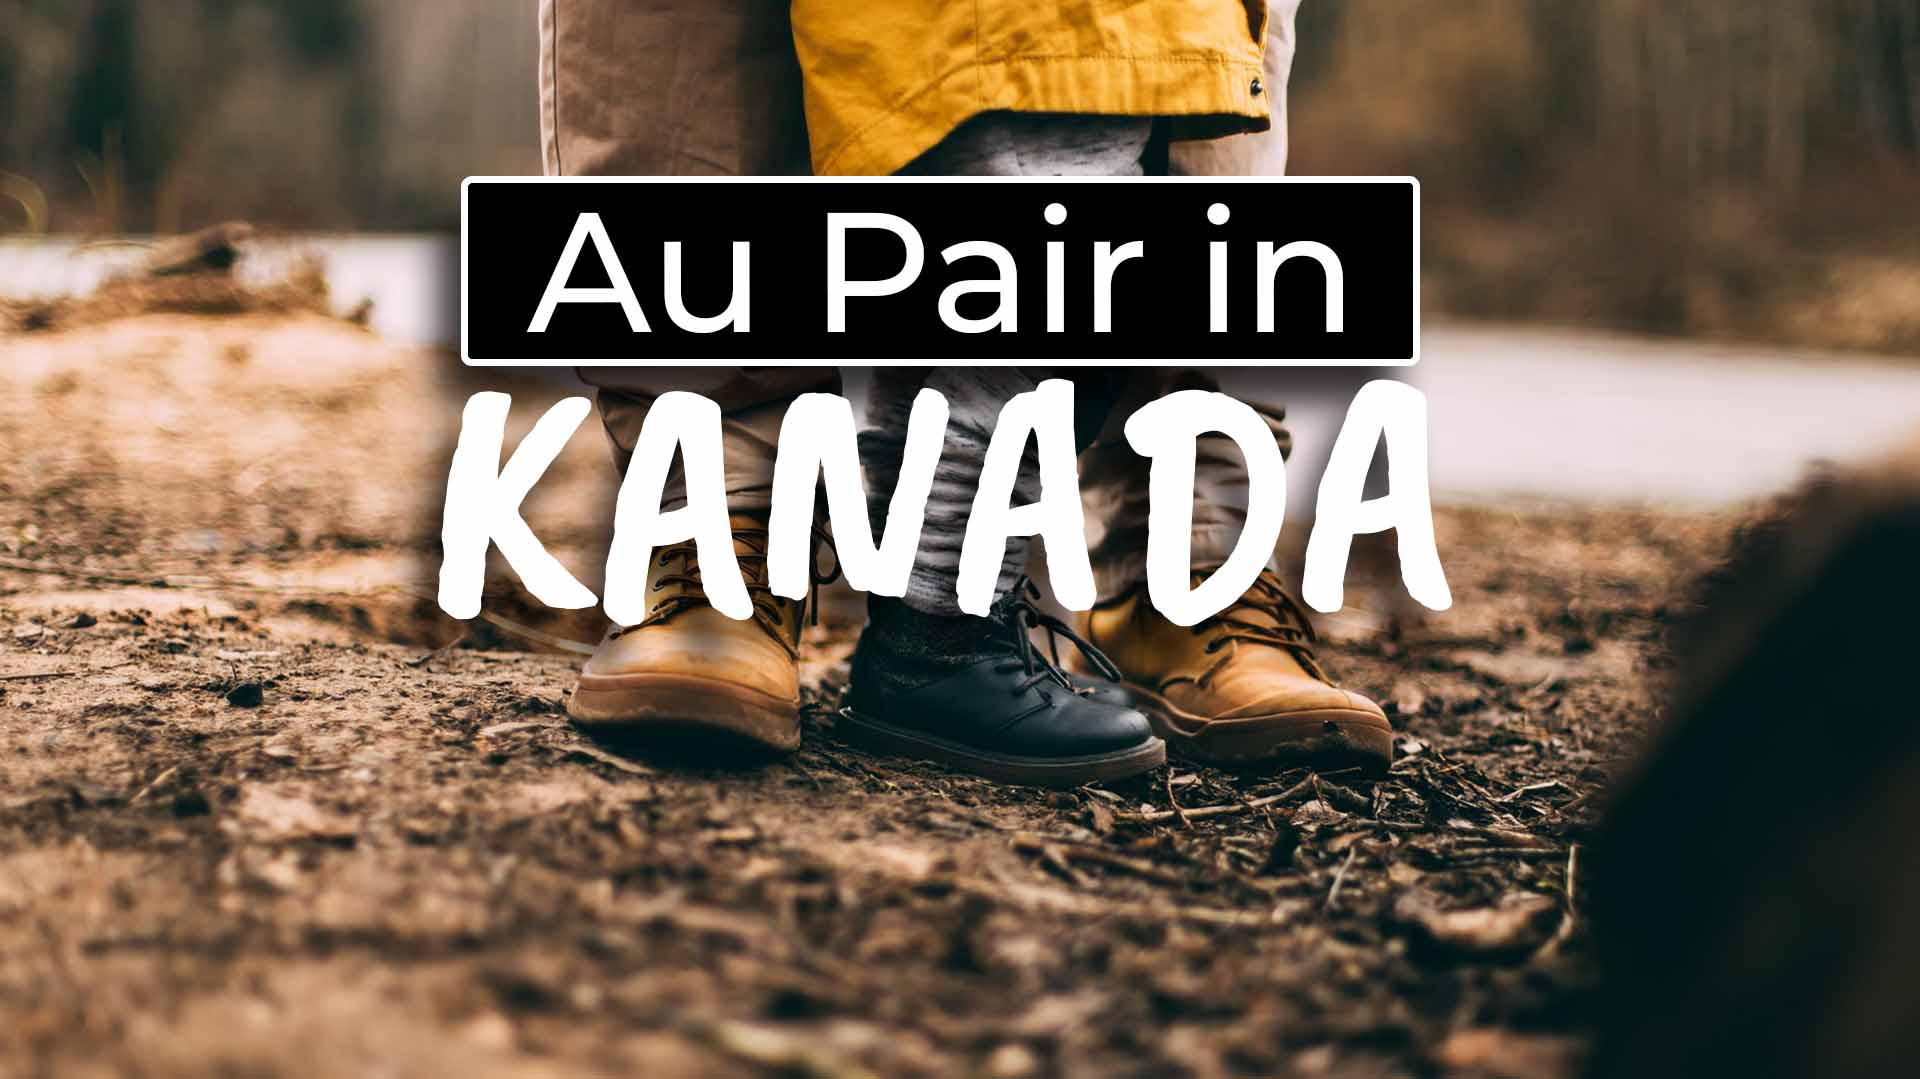 Als Au Pair in Kanada - Cover